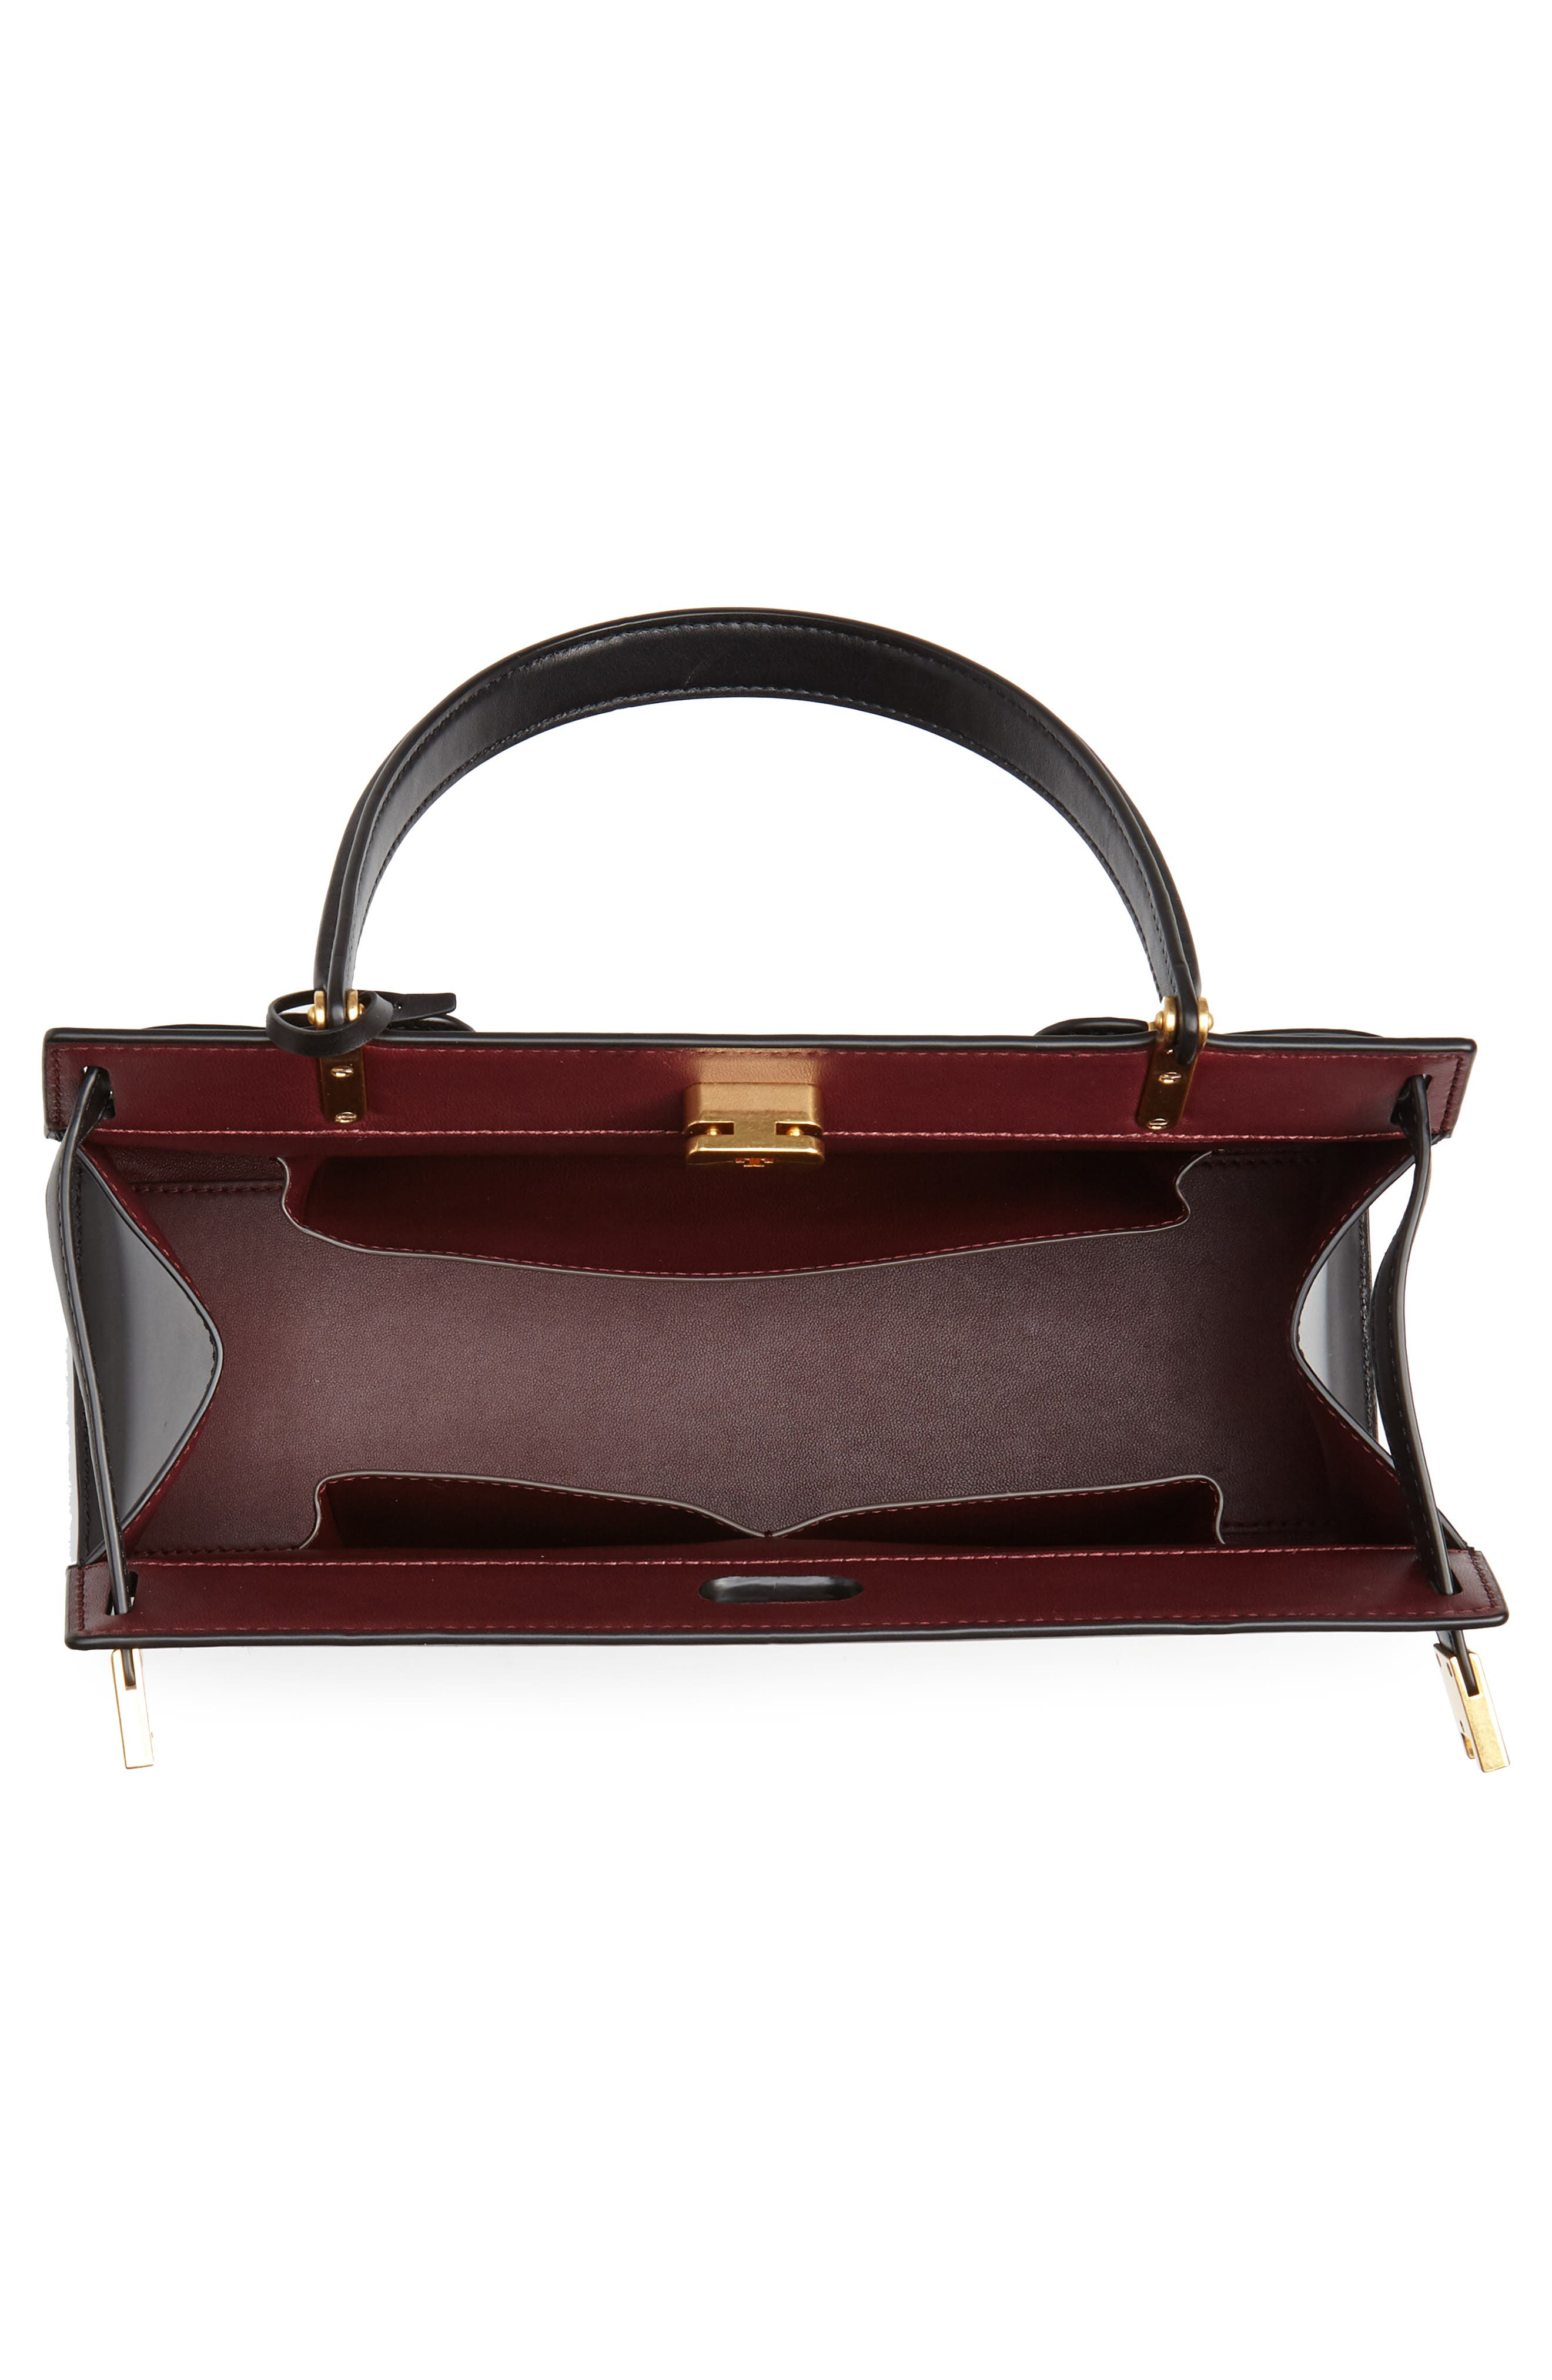 TORY BURCH, Lee Radziwill Leather Bag, Alternate thumbnail 4, color, 001